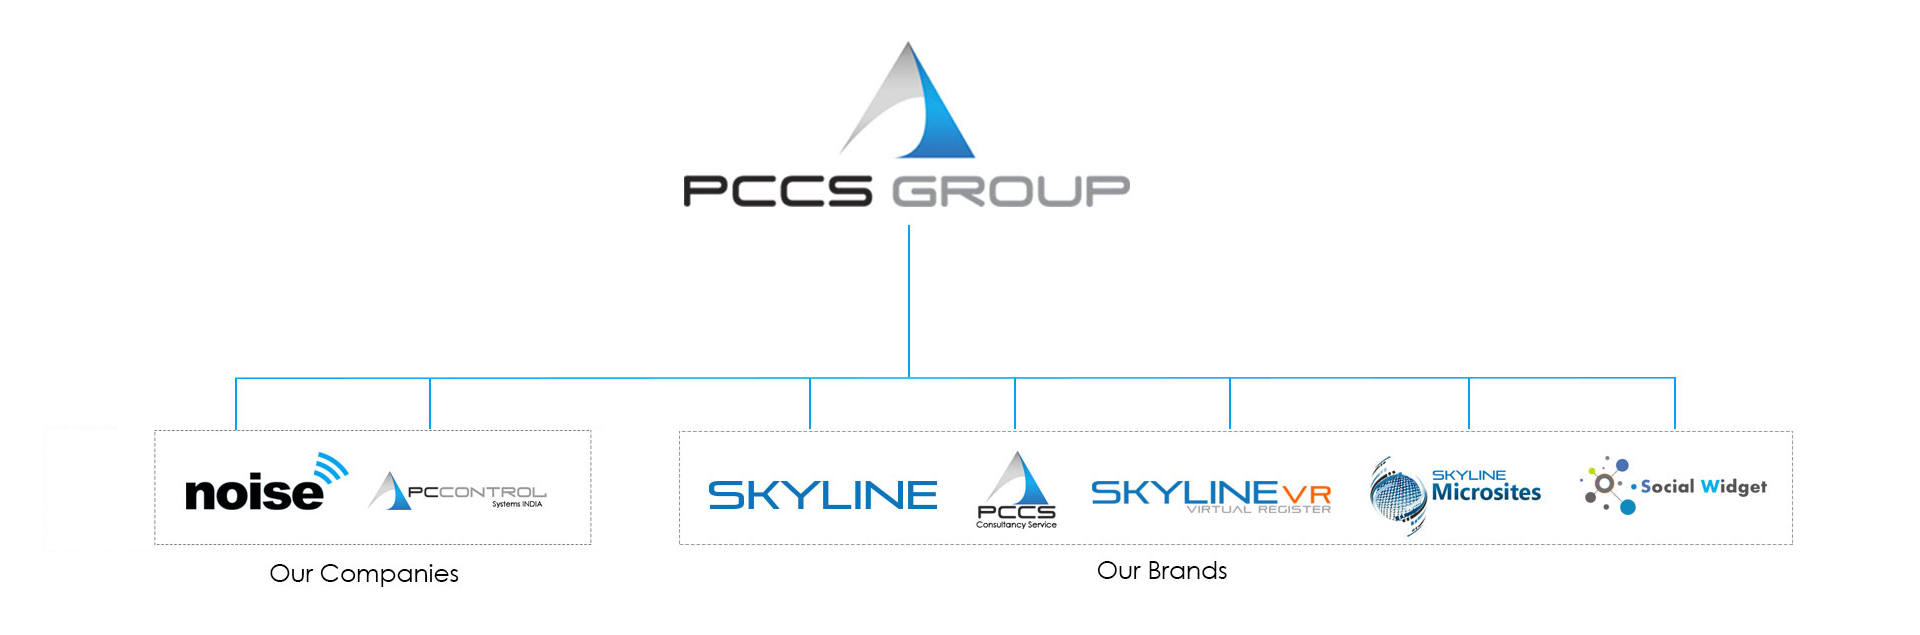 New Corporate Structure Pccs Group